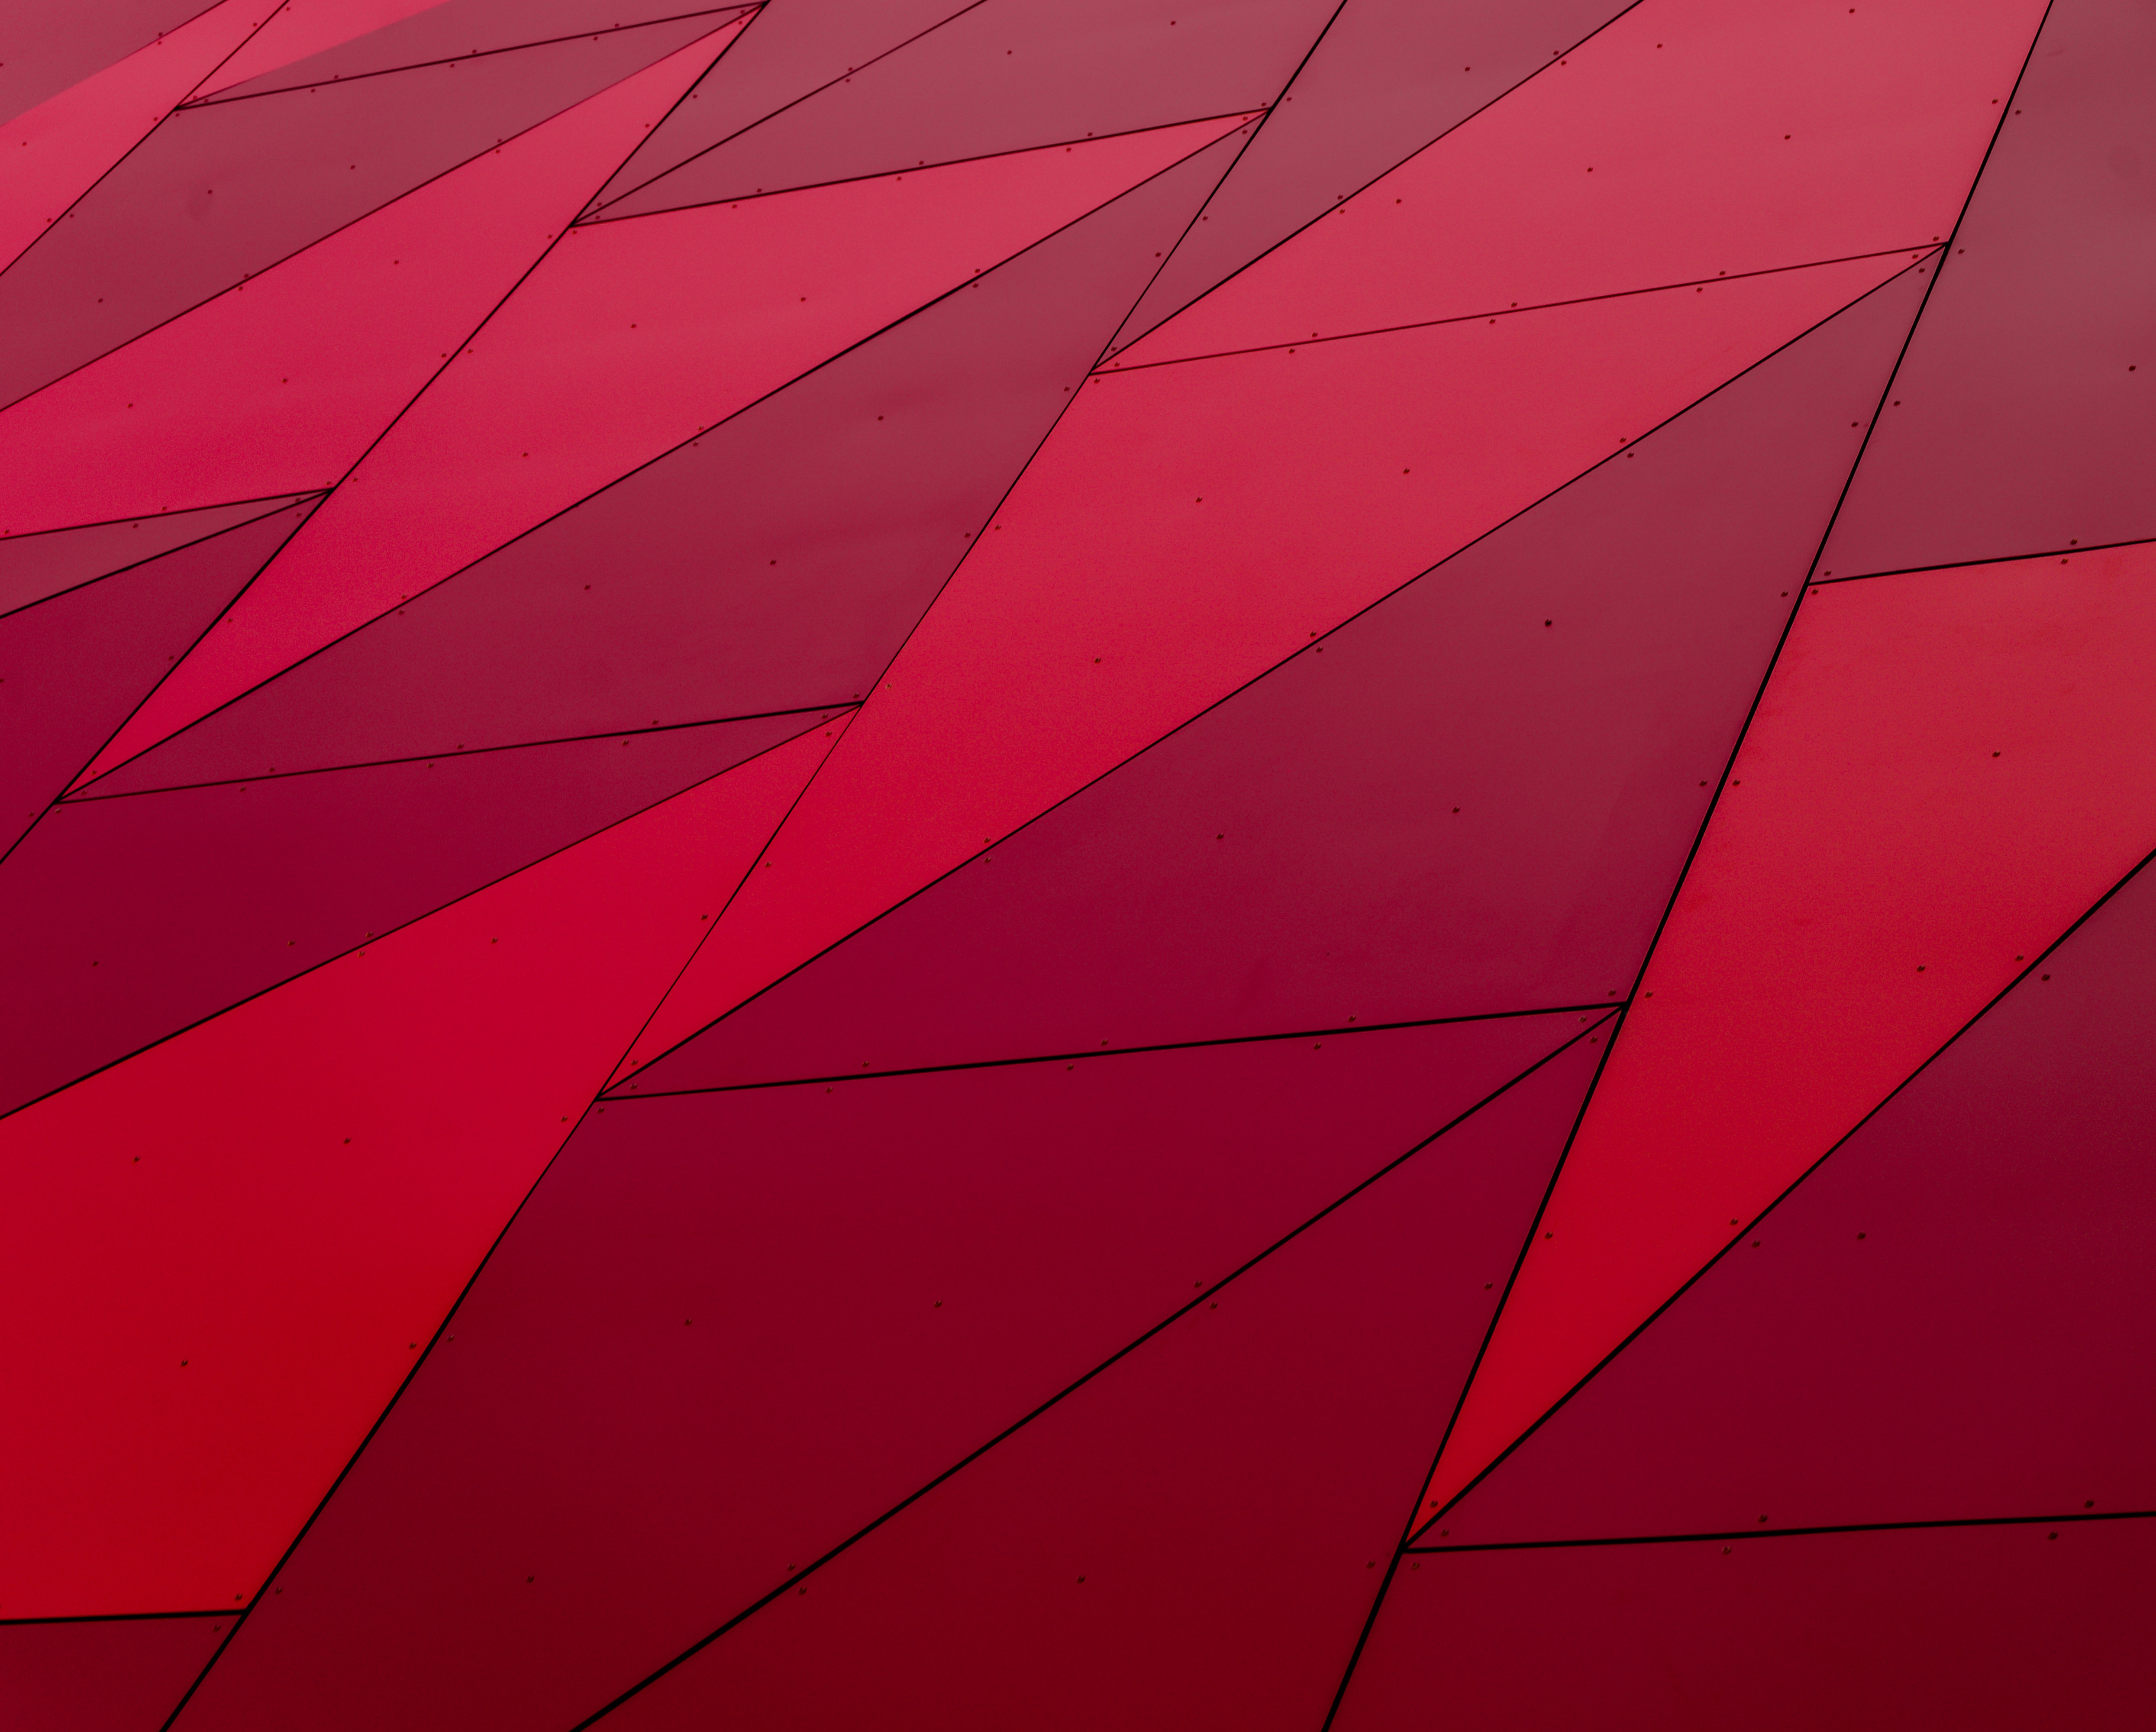 A red triangle texture pattern.